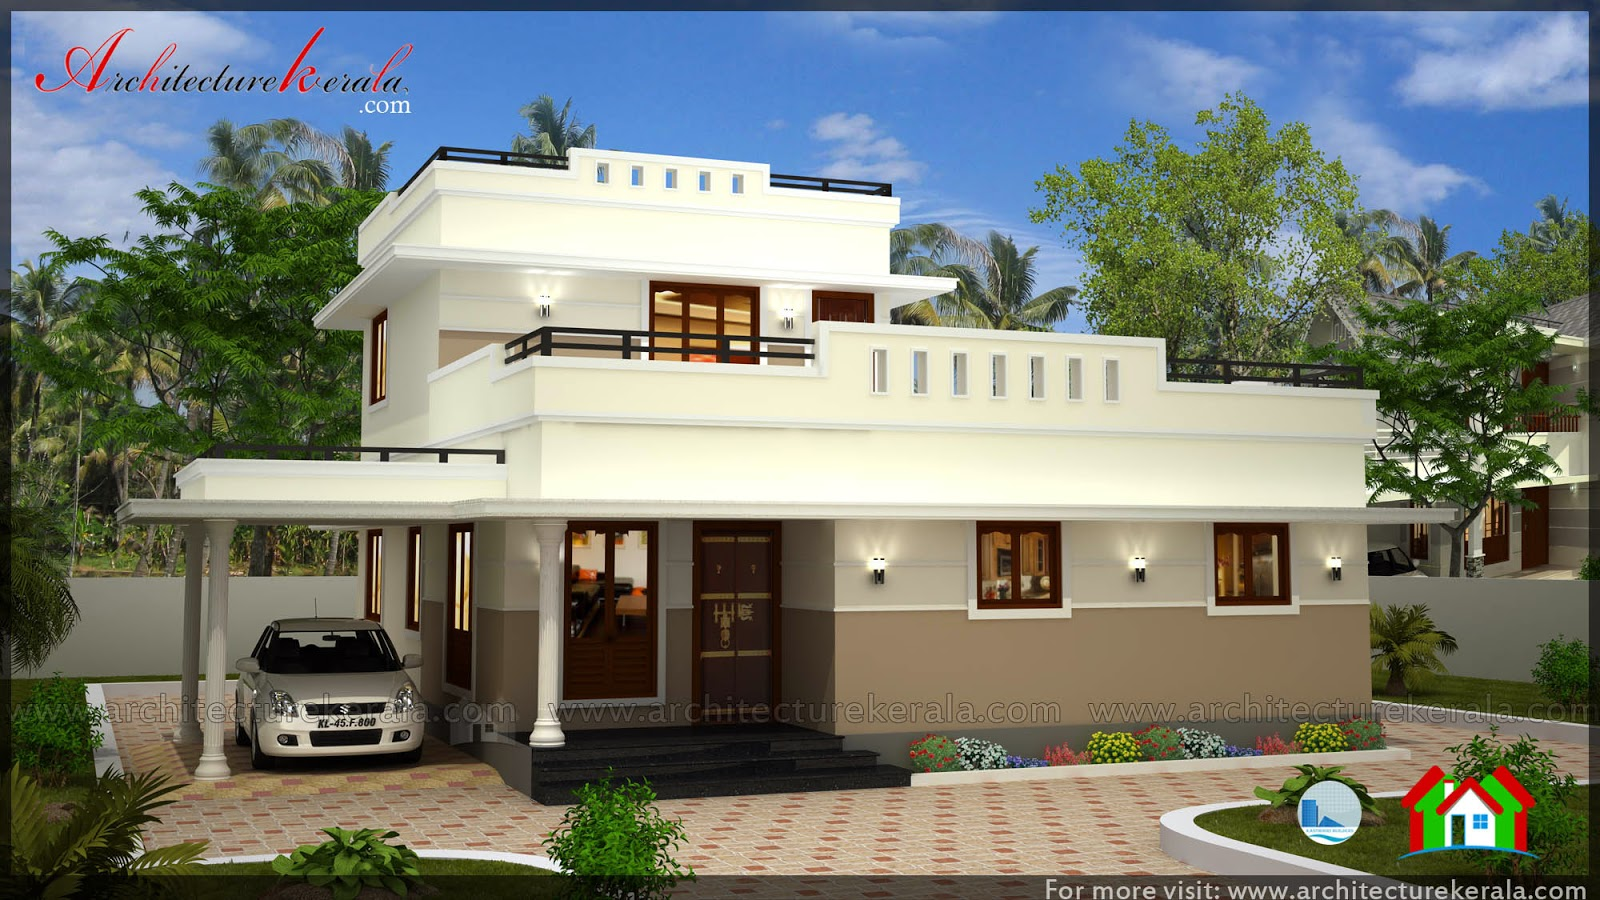 Low cost 3 bedroom kerala house plan with elevation free for Kerala house plan images